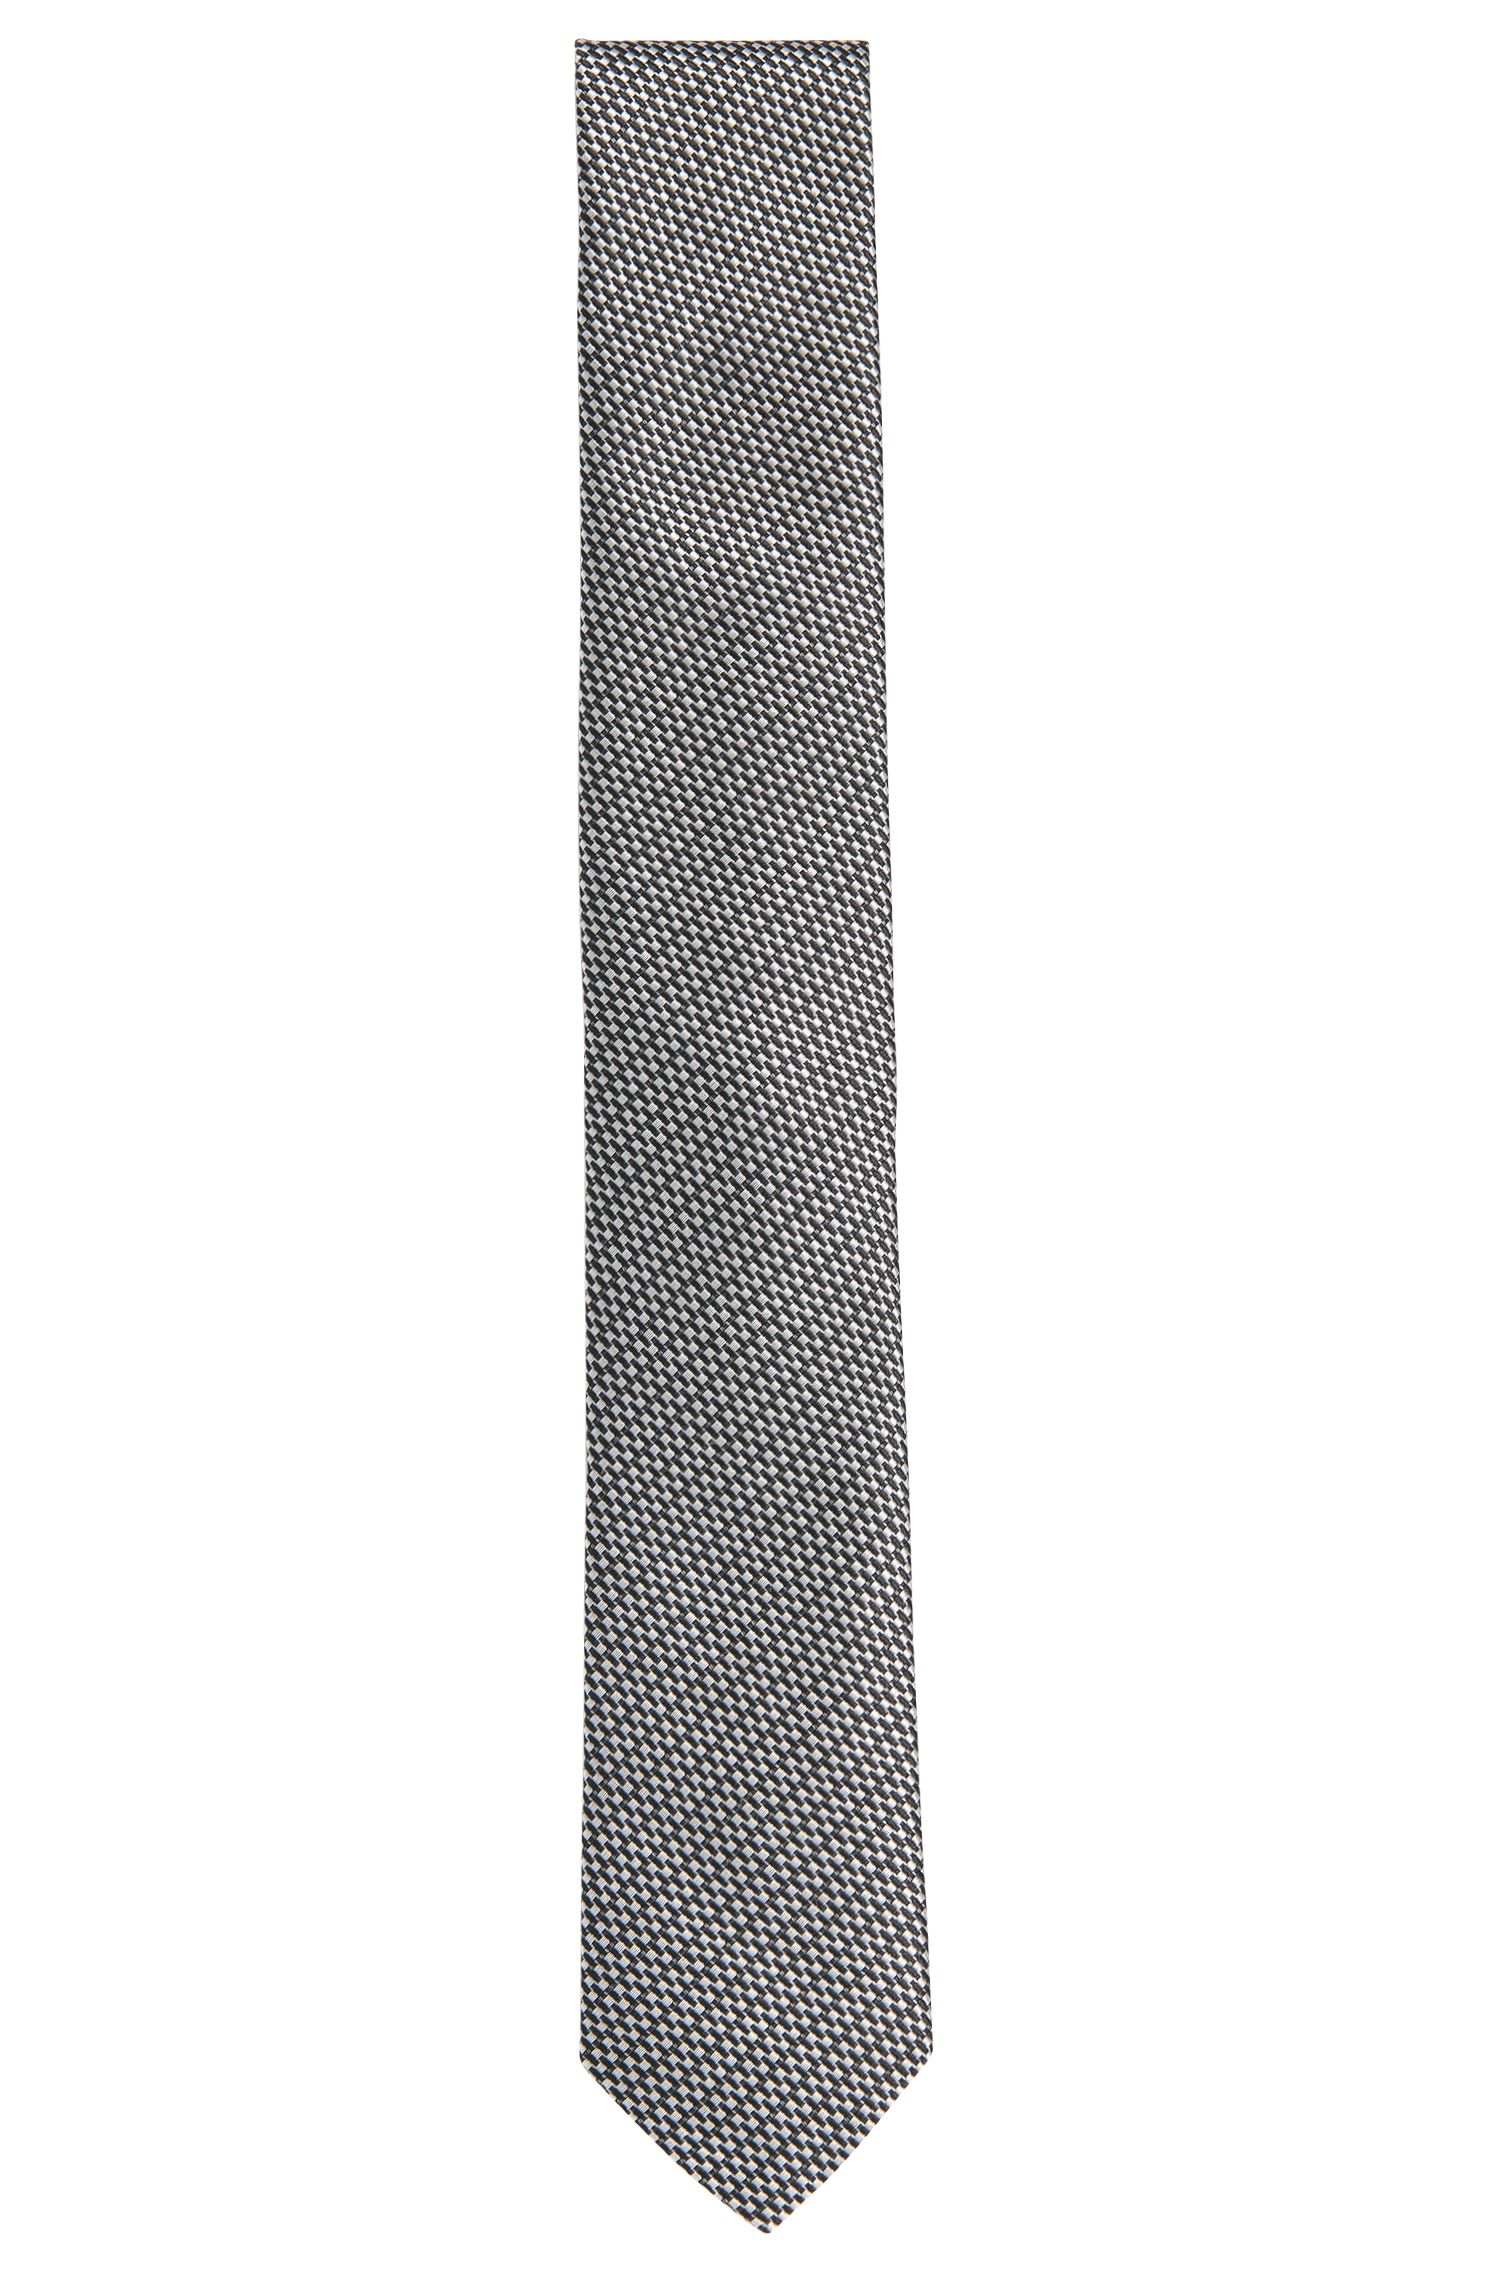 All-over patterned silk tie: 'Tie 6 cm'